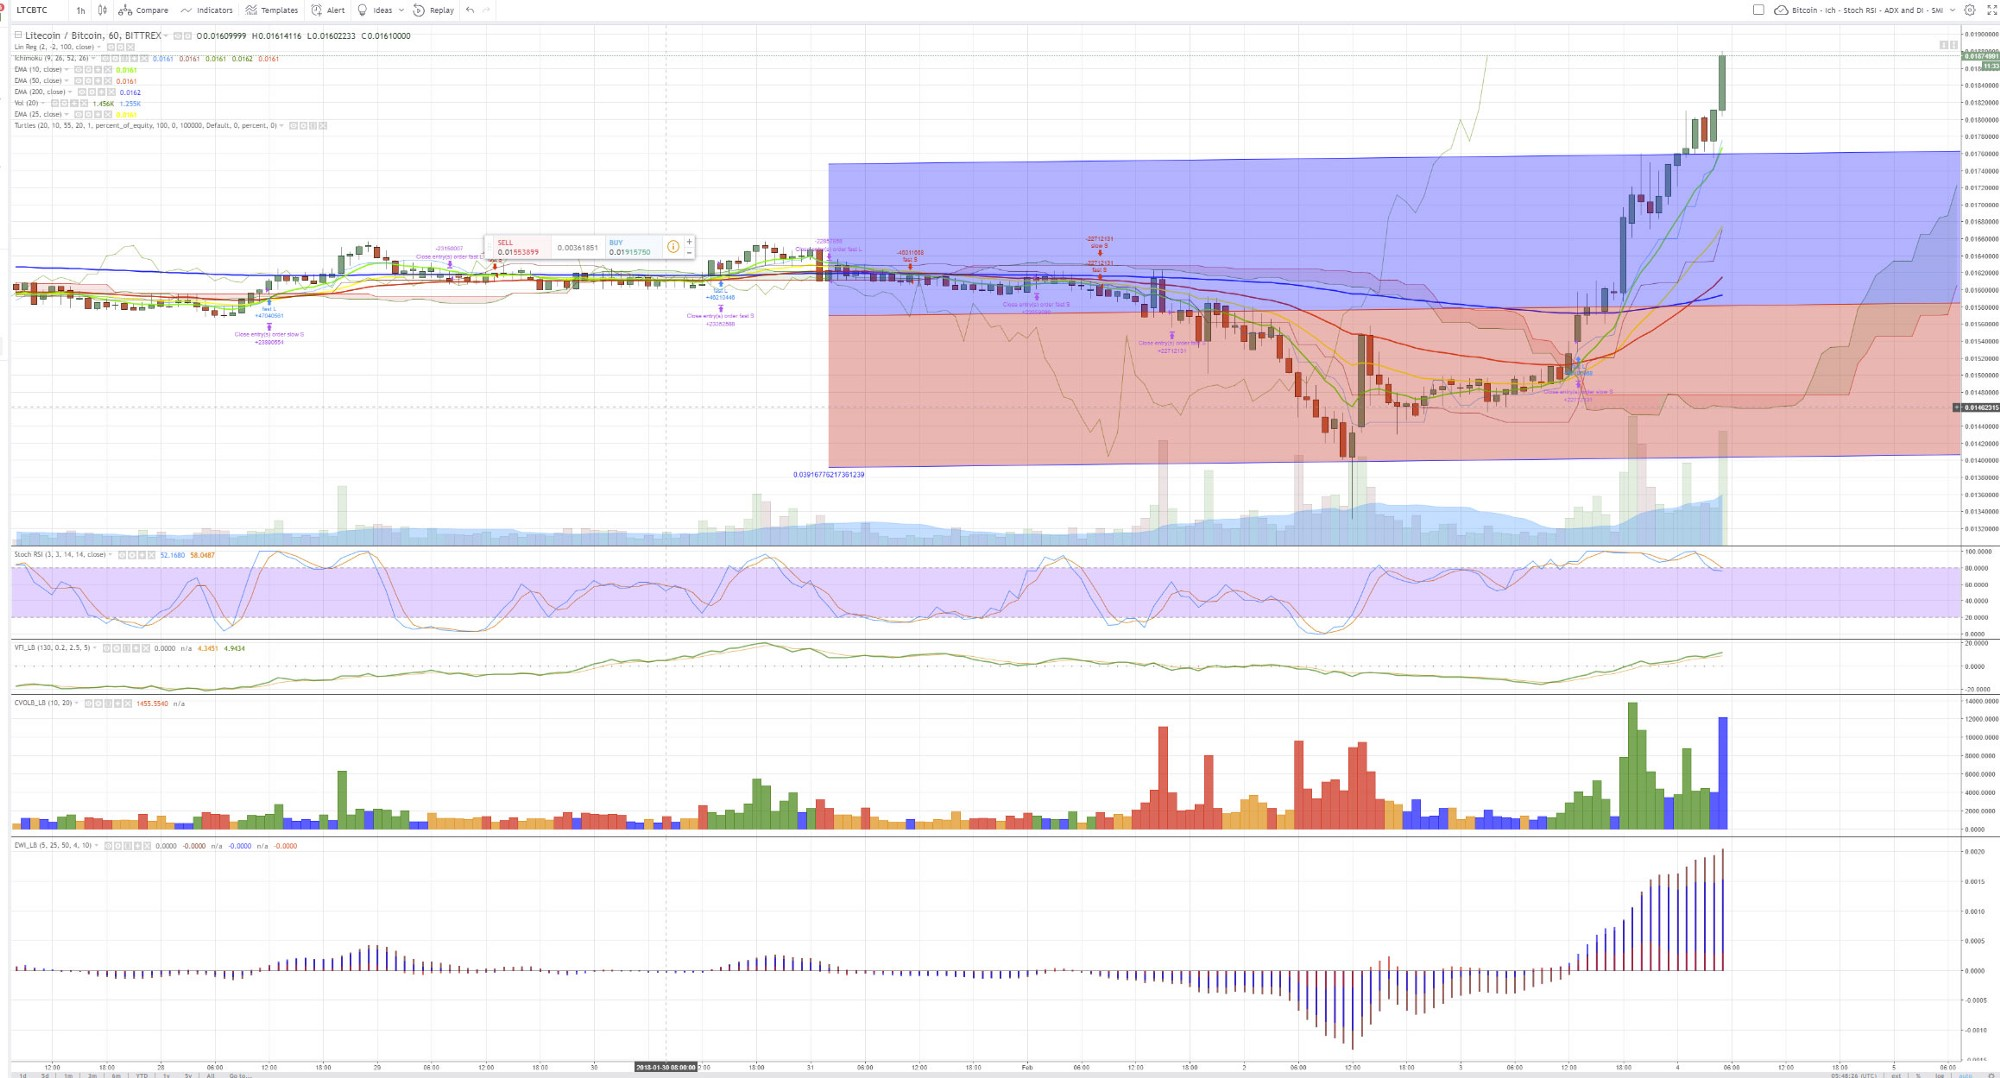 hight resolution of ltc a typical trend following explosion upwards after a month and a half of false breakouts